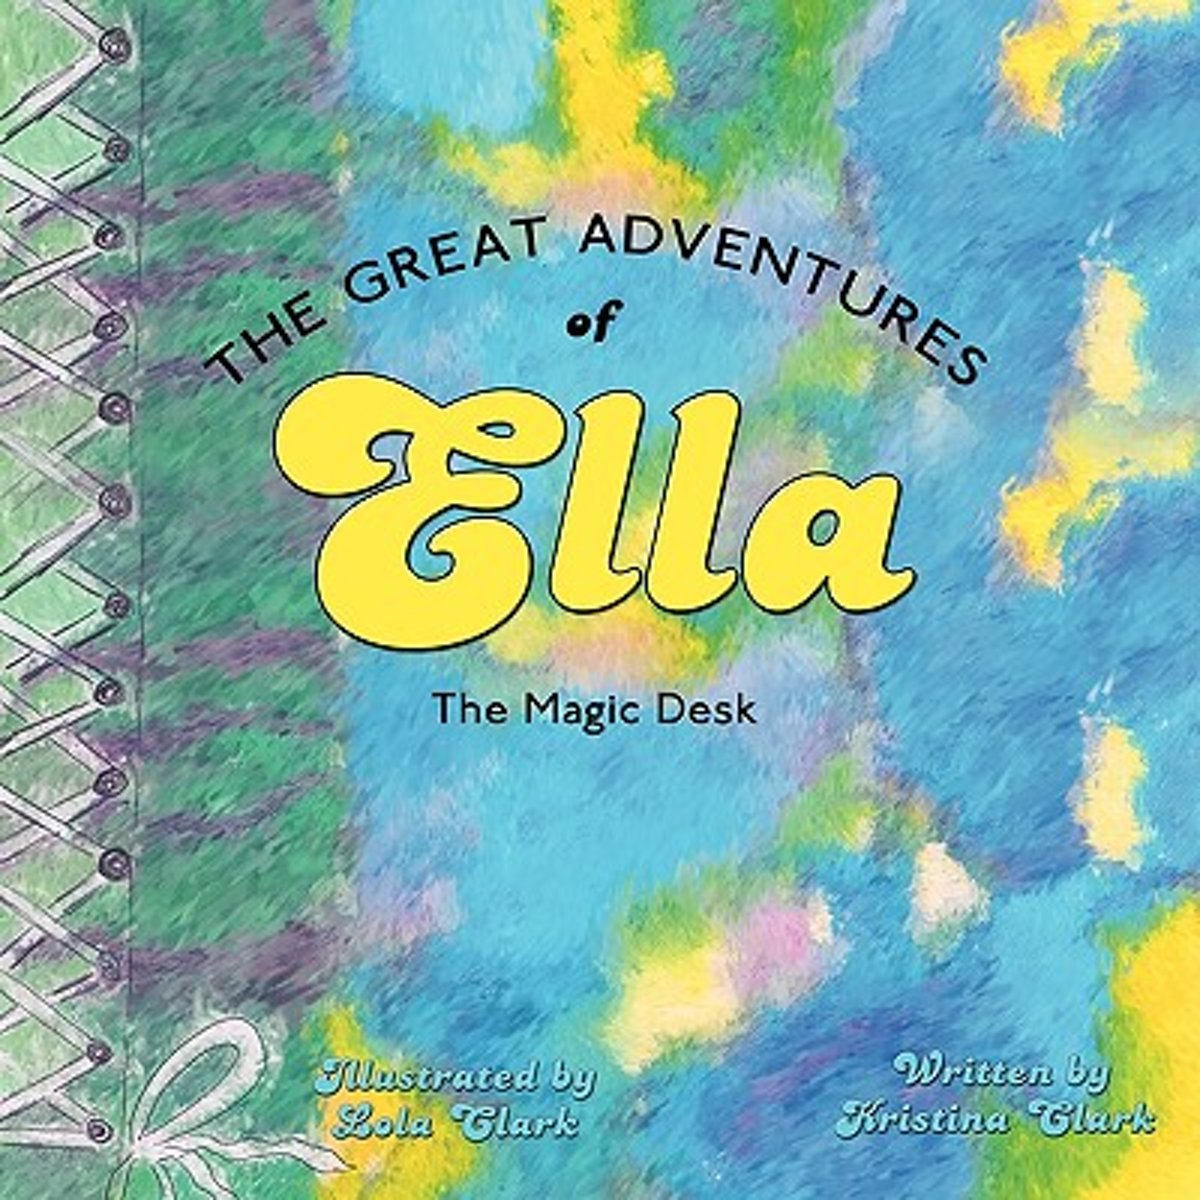 The Great Adventures of Ella